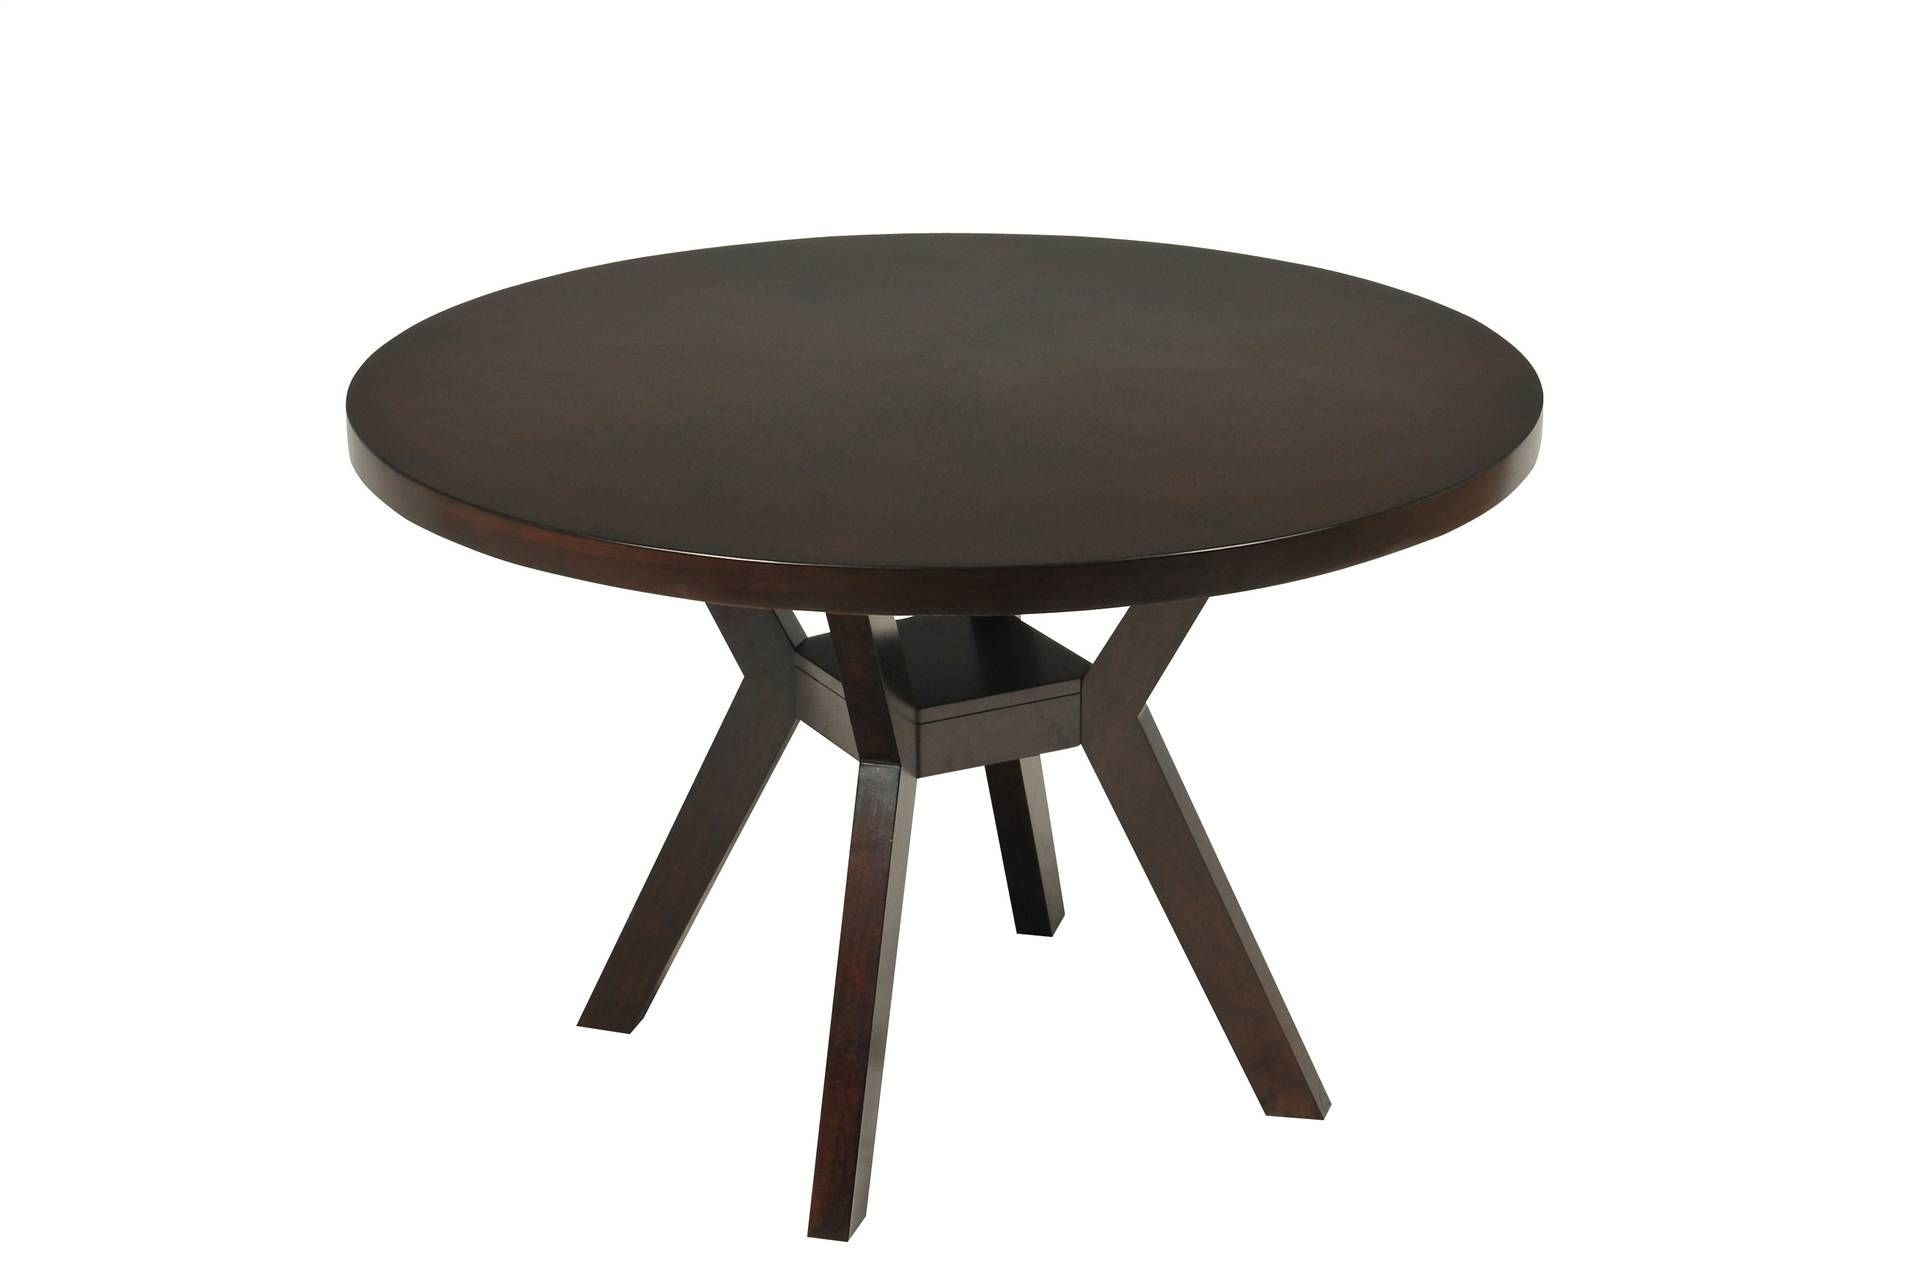 Macie Round Dining Table | Apartment Inspiration | Pinterest | Round Within Newest Macie Round Dining Tables (Photo 4 of 20)